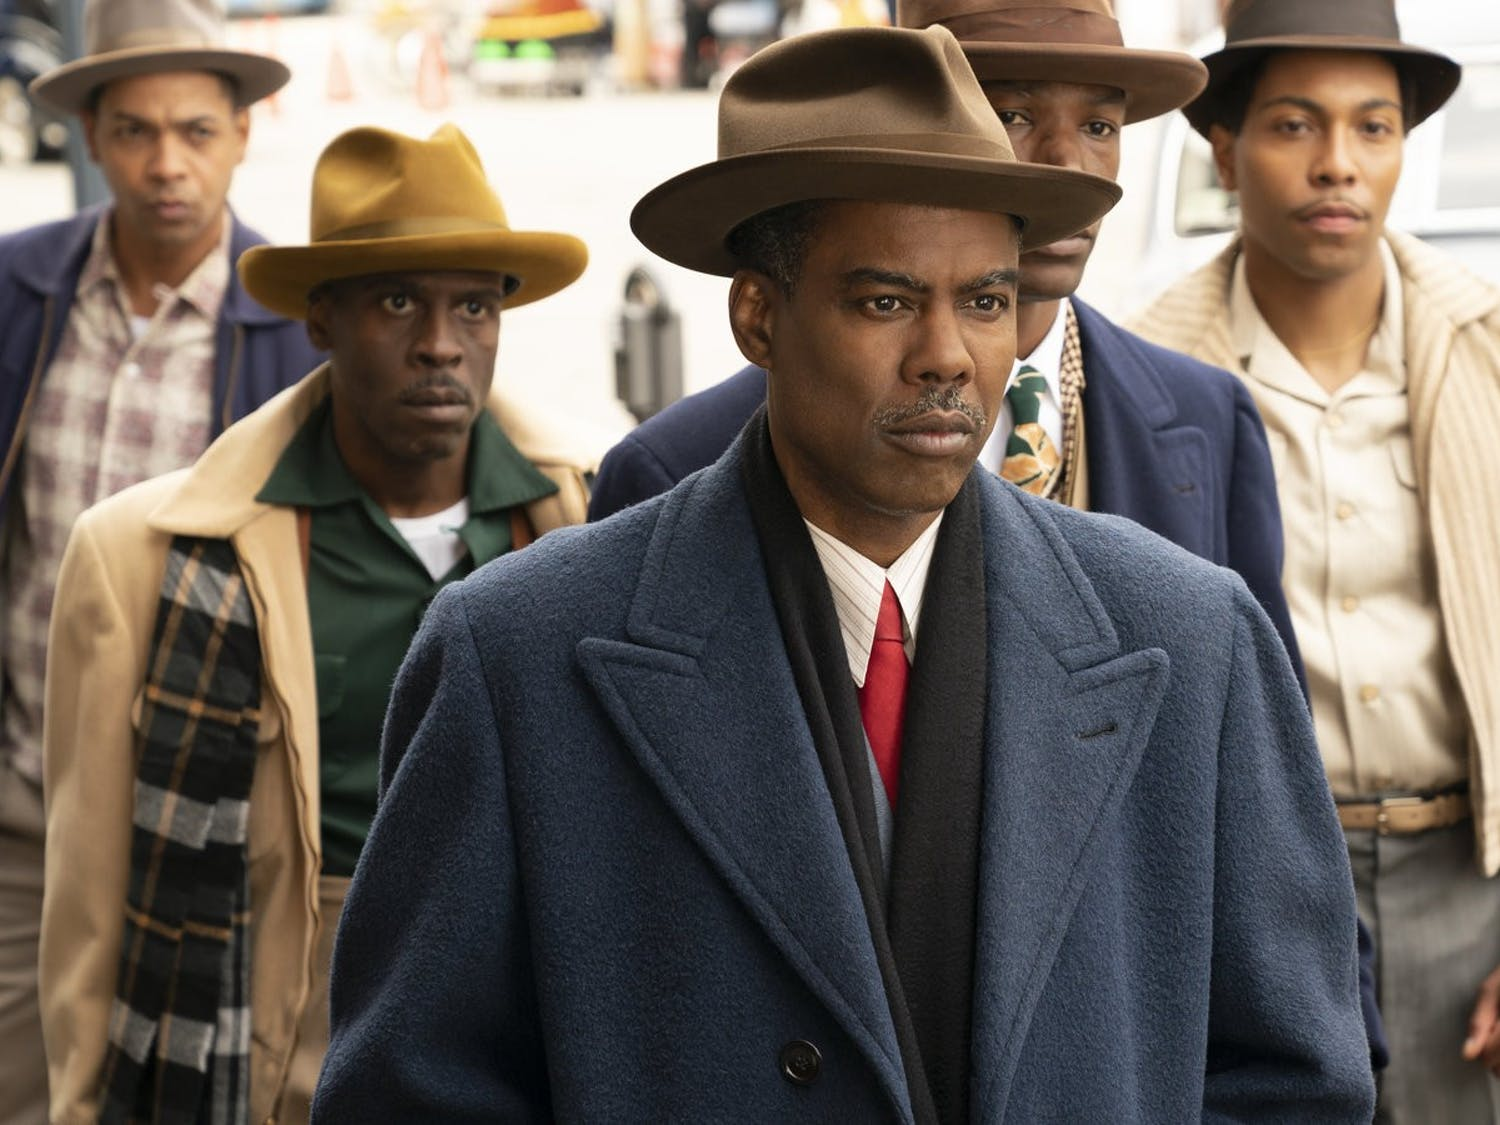 Chris Rock joins the cast of 'Fargo' this season as the lead mobster of an American crime family.